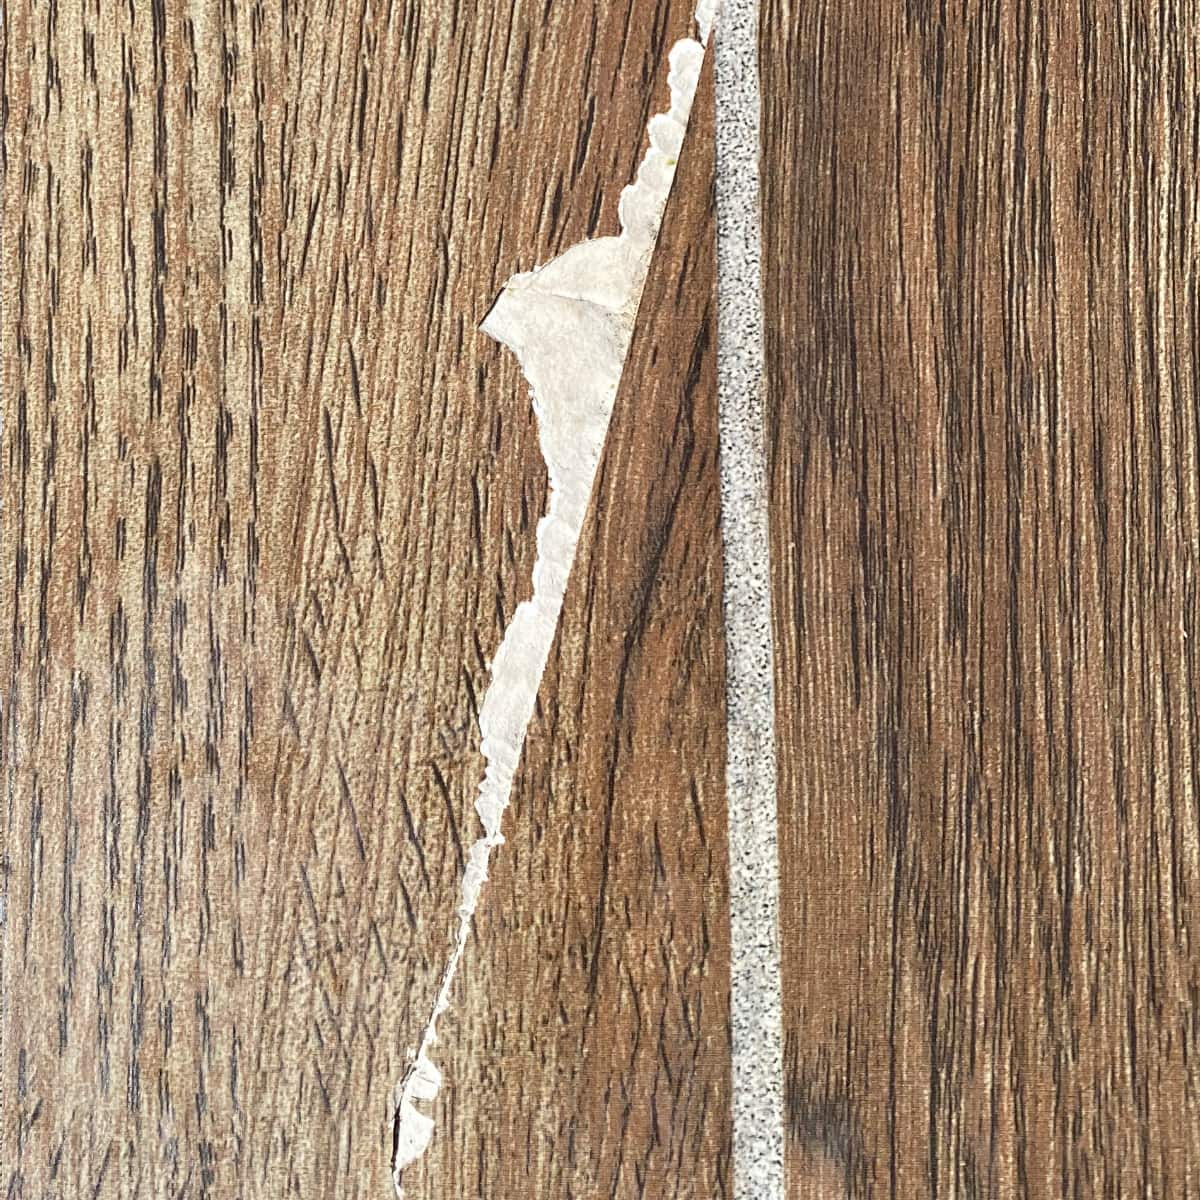 How to fix chipped tile that looks like wood